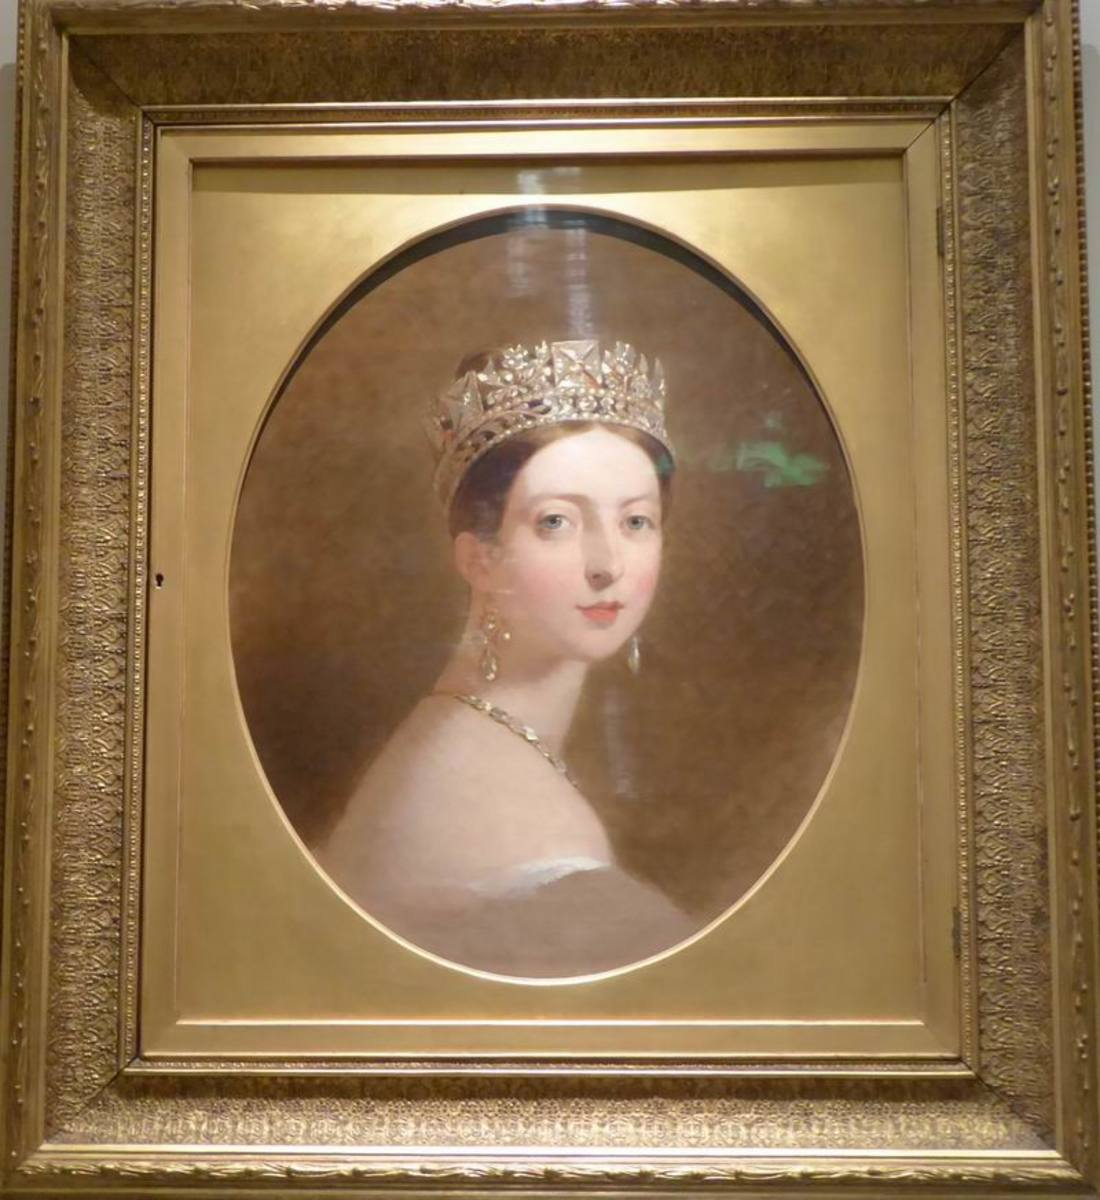 Portrait of Queen Victoria by Thomas Sully (1837-9). Image by Frances Spiegel 2019. All rights reserved.